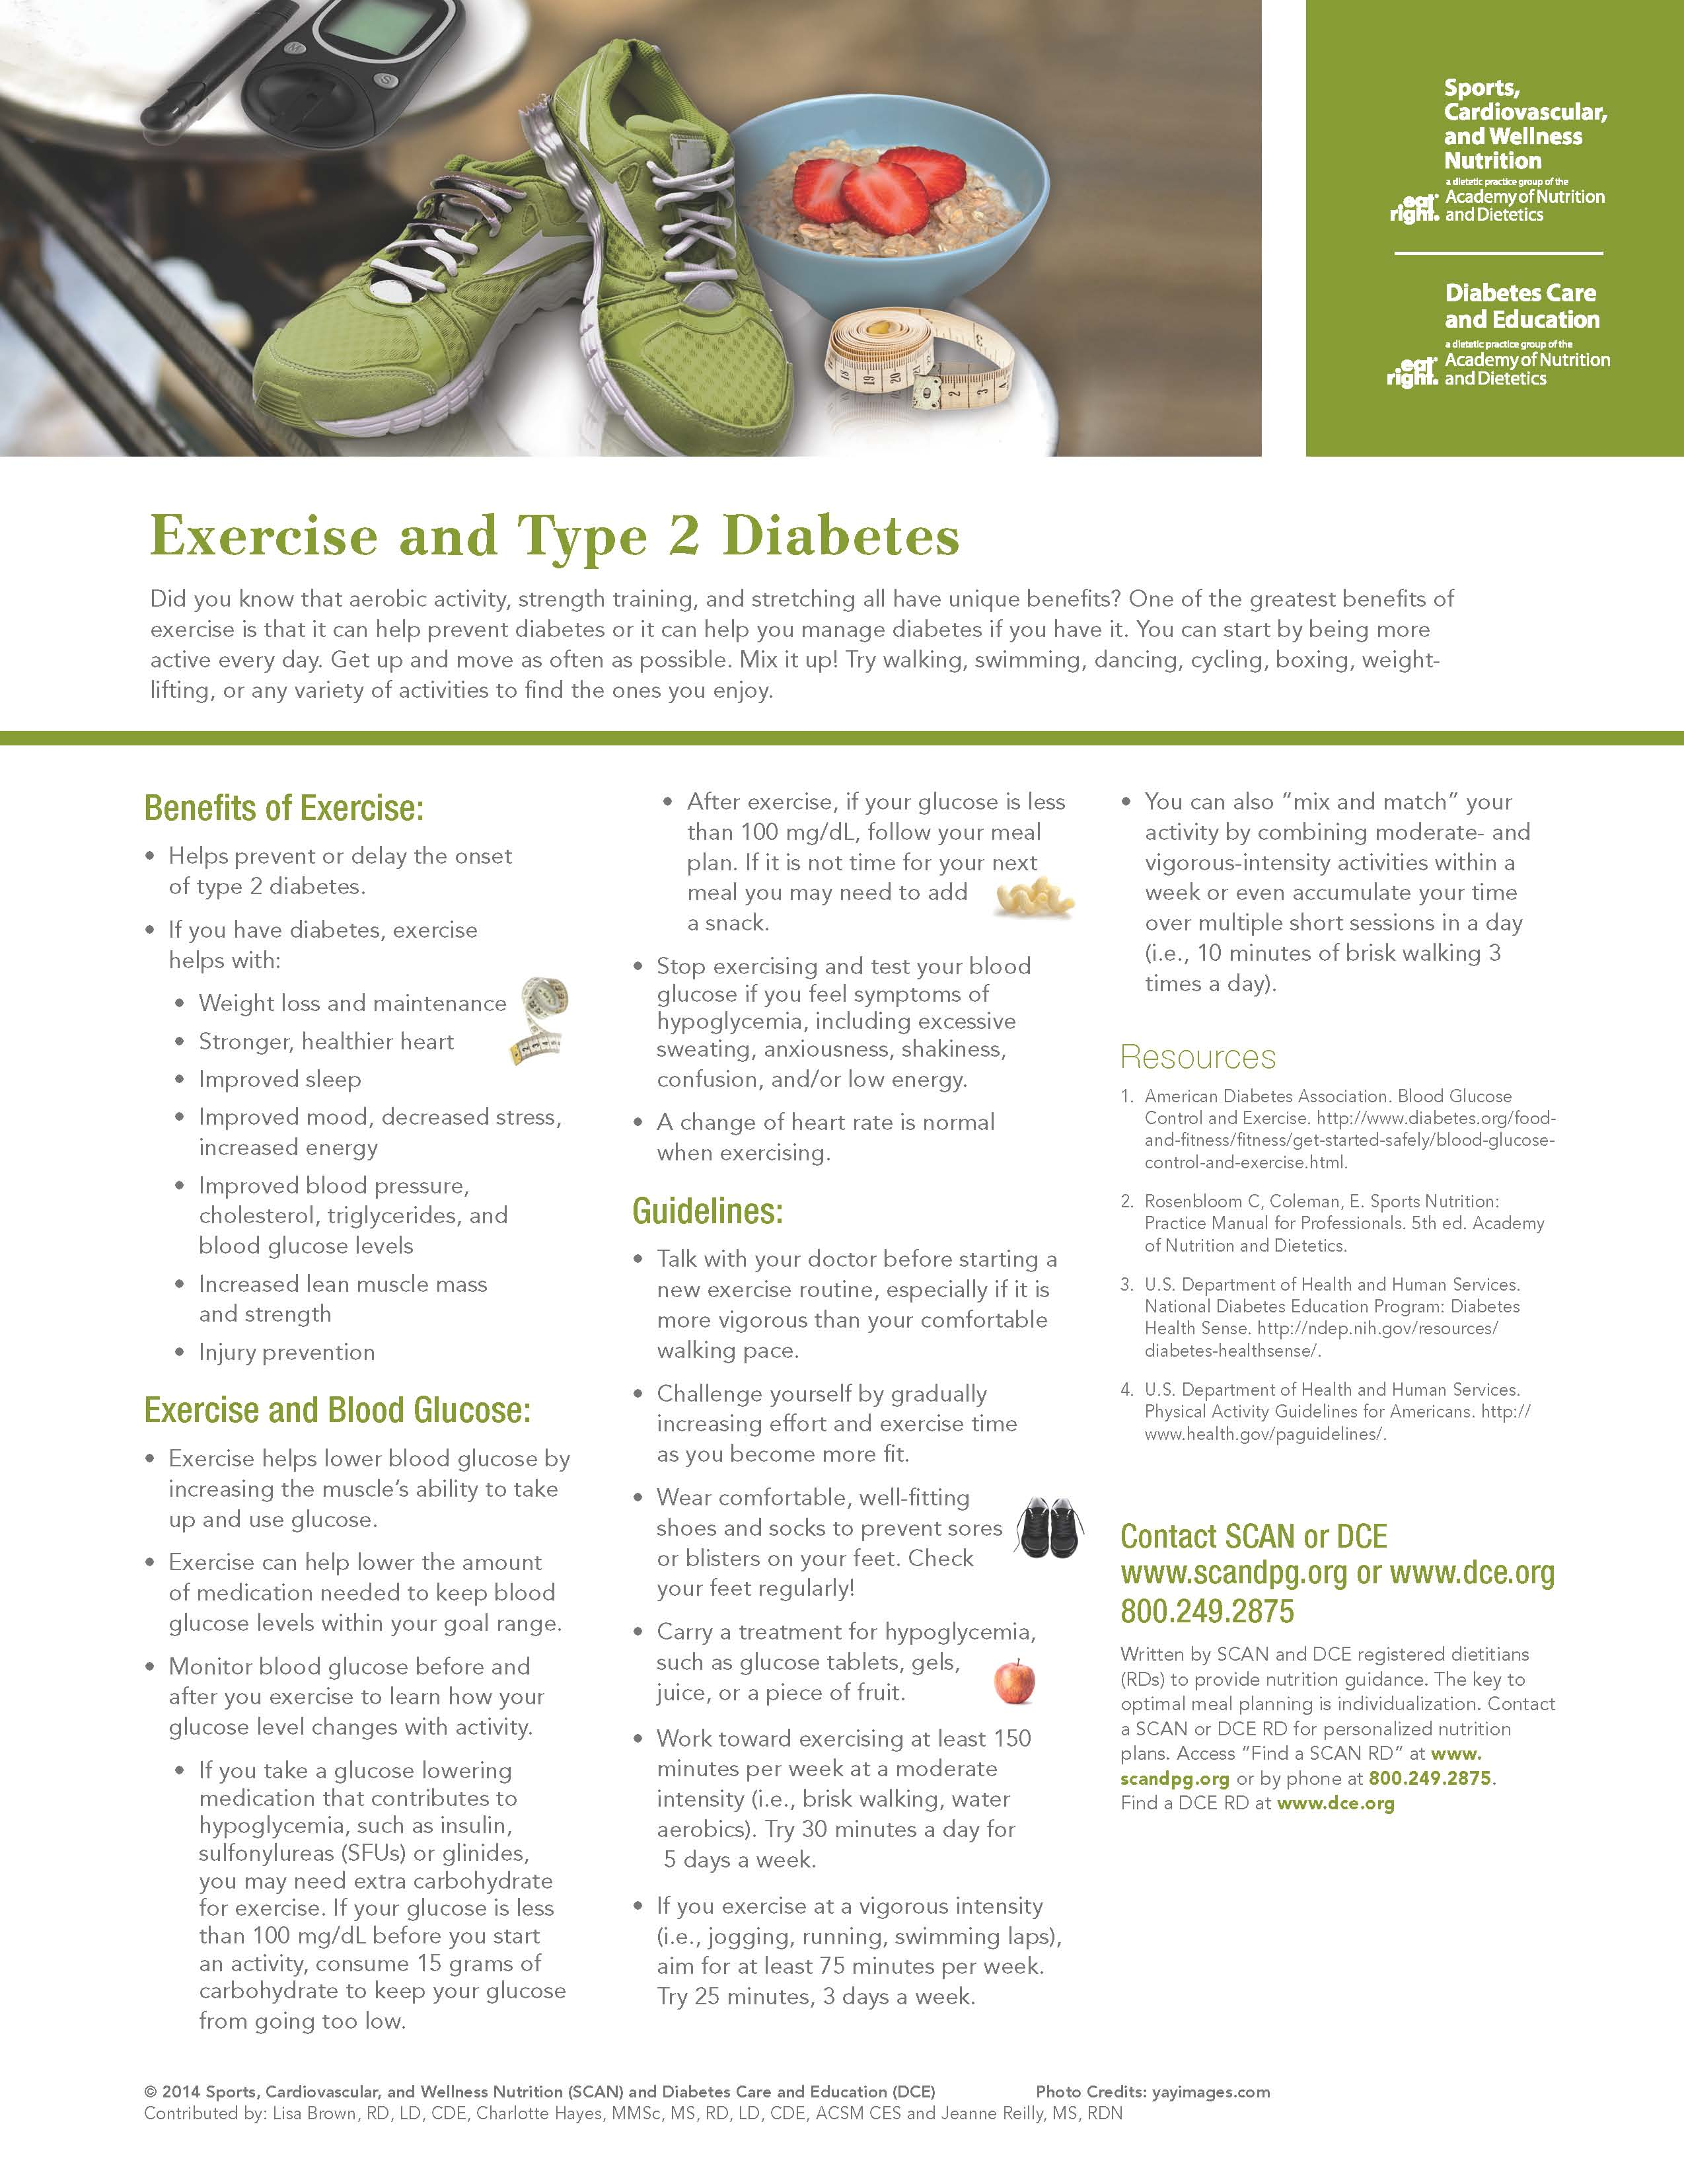 WCV Exercise and Type 2 Diabetes